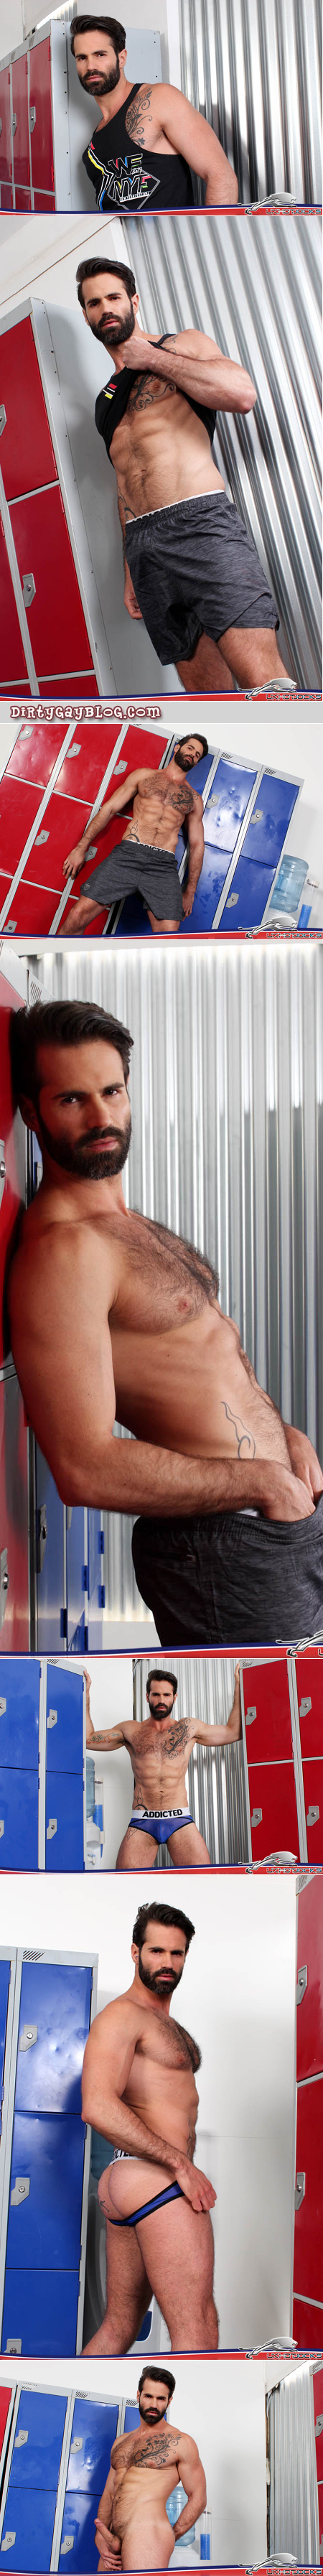 Hairy muscle stud strips in the locker room and plays with his erection.